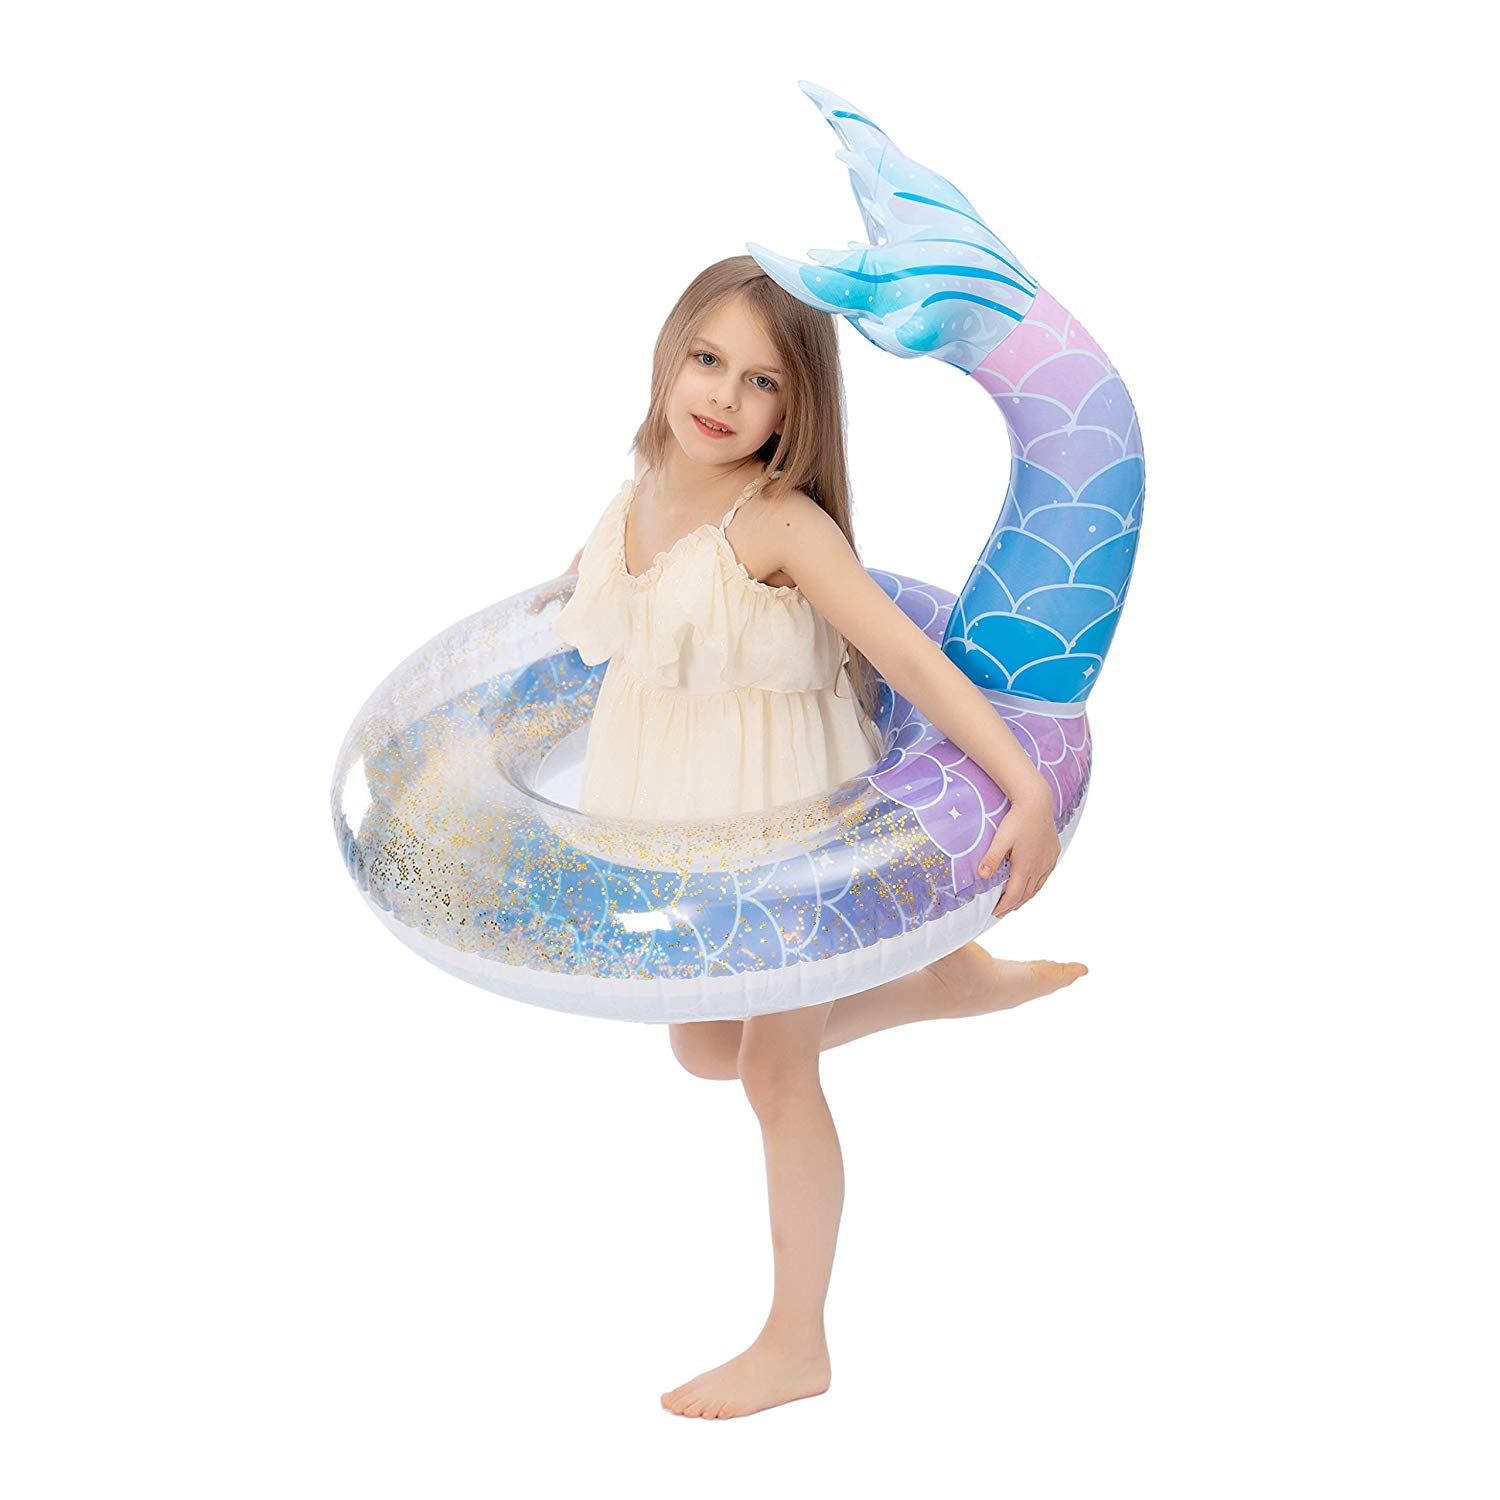 Inflatable Mermaid Tail Pool Float with Glitters, 2 Piece